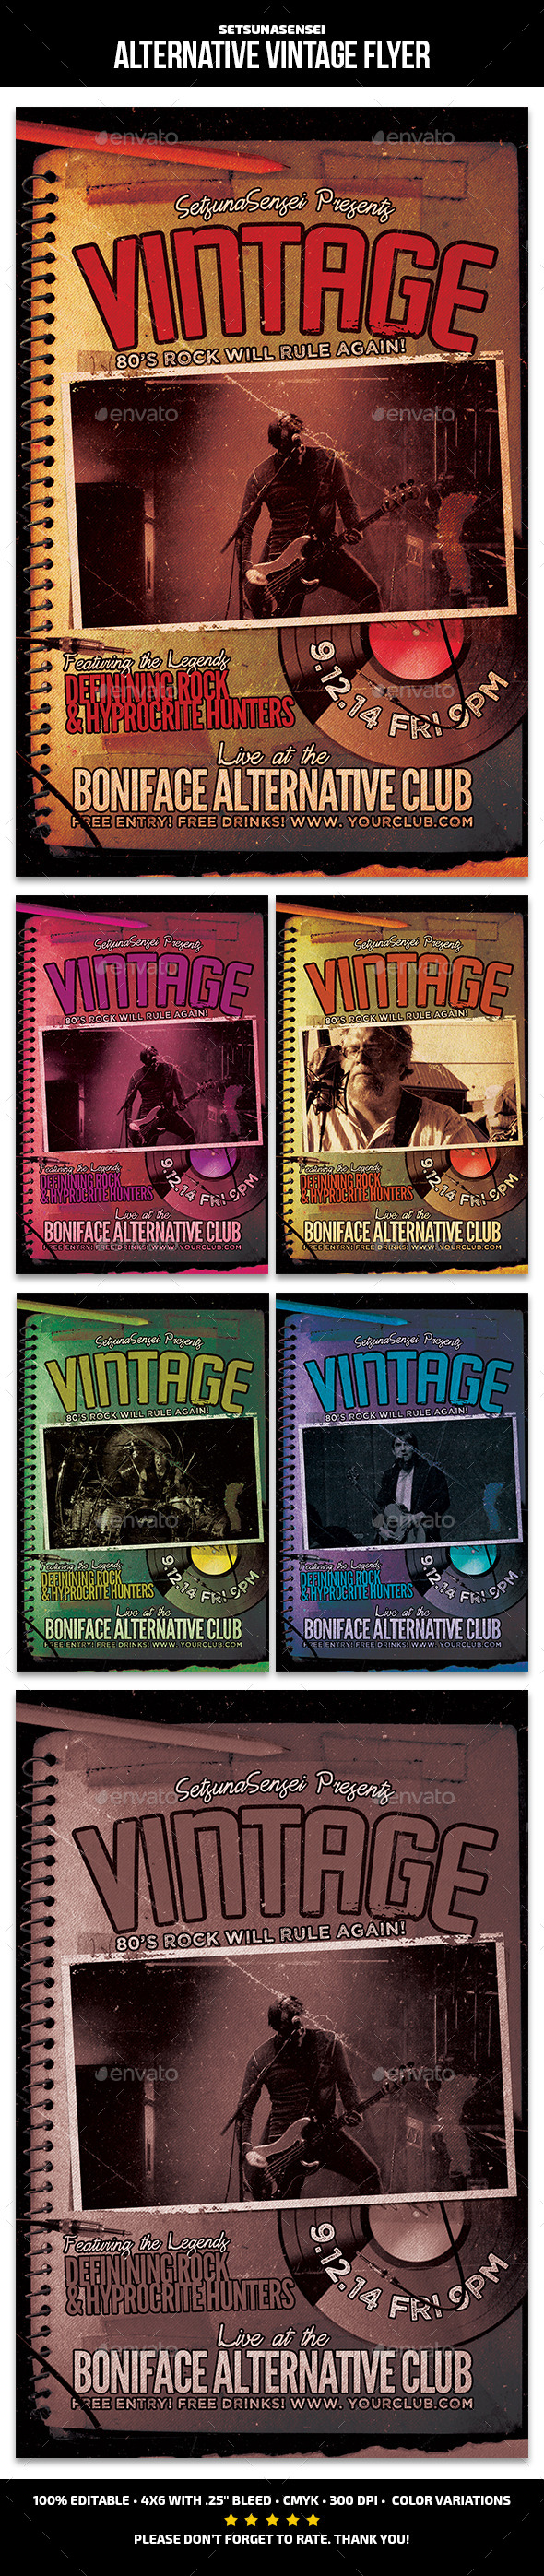 Alternative Vintage Flyer - Concerts Events